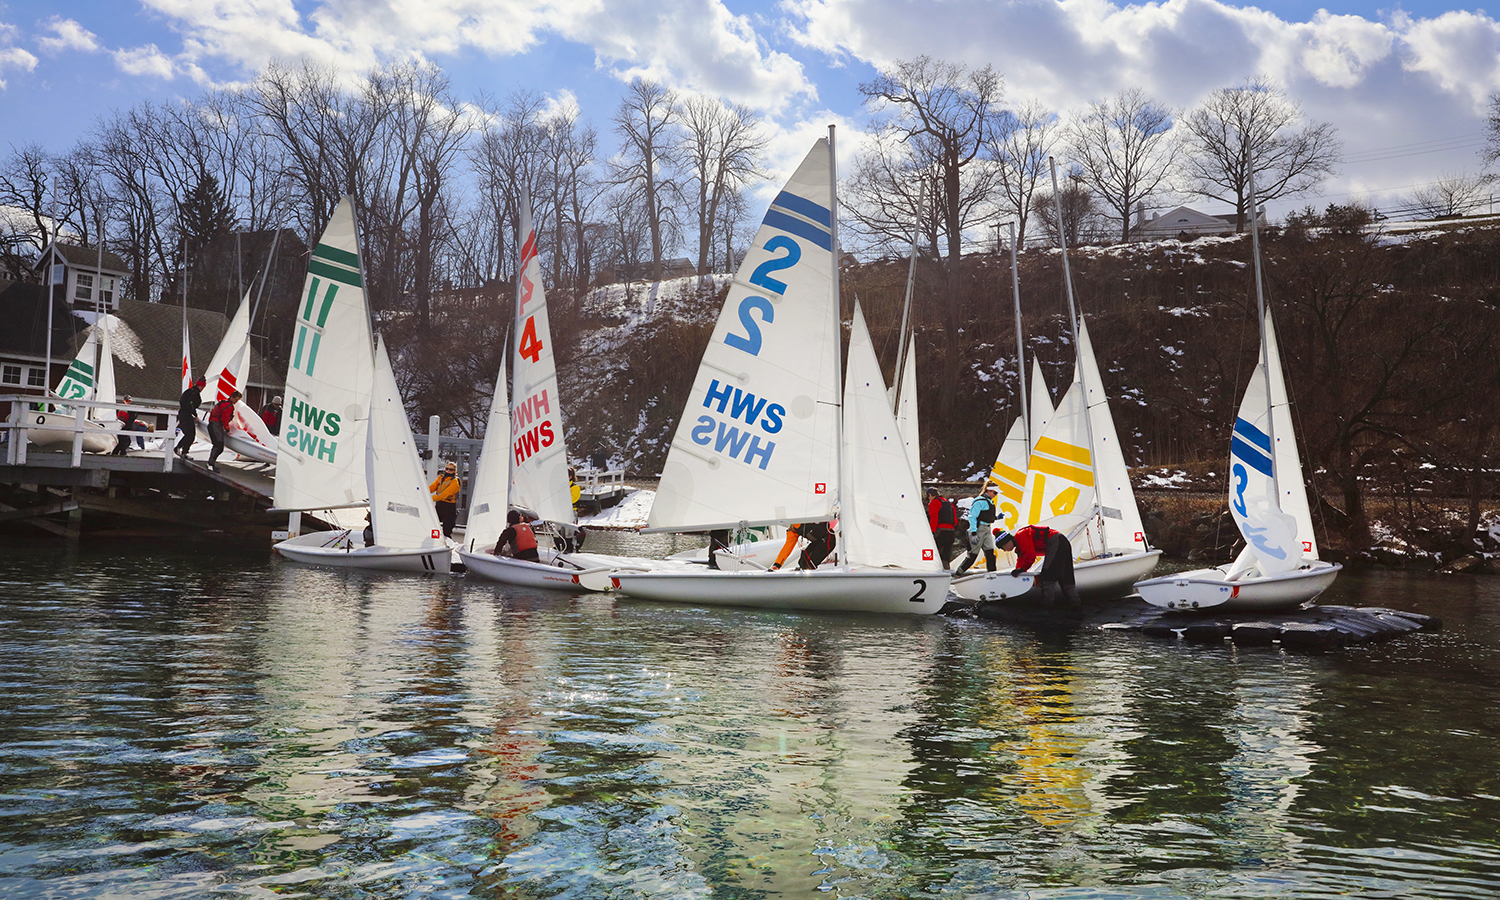 The HWS sailing team prepares for practice at Bozzuto Boathouse.